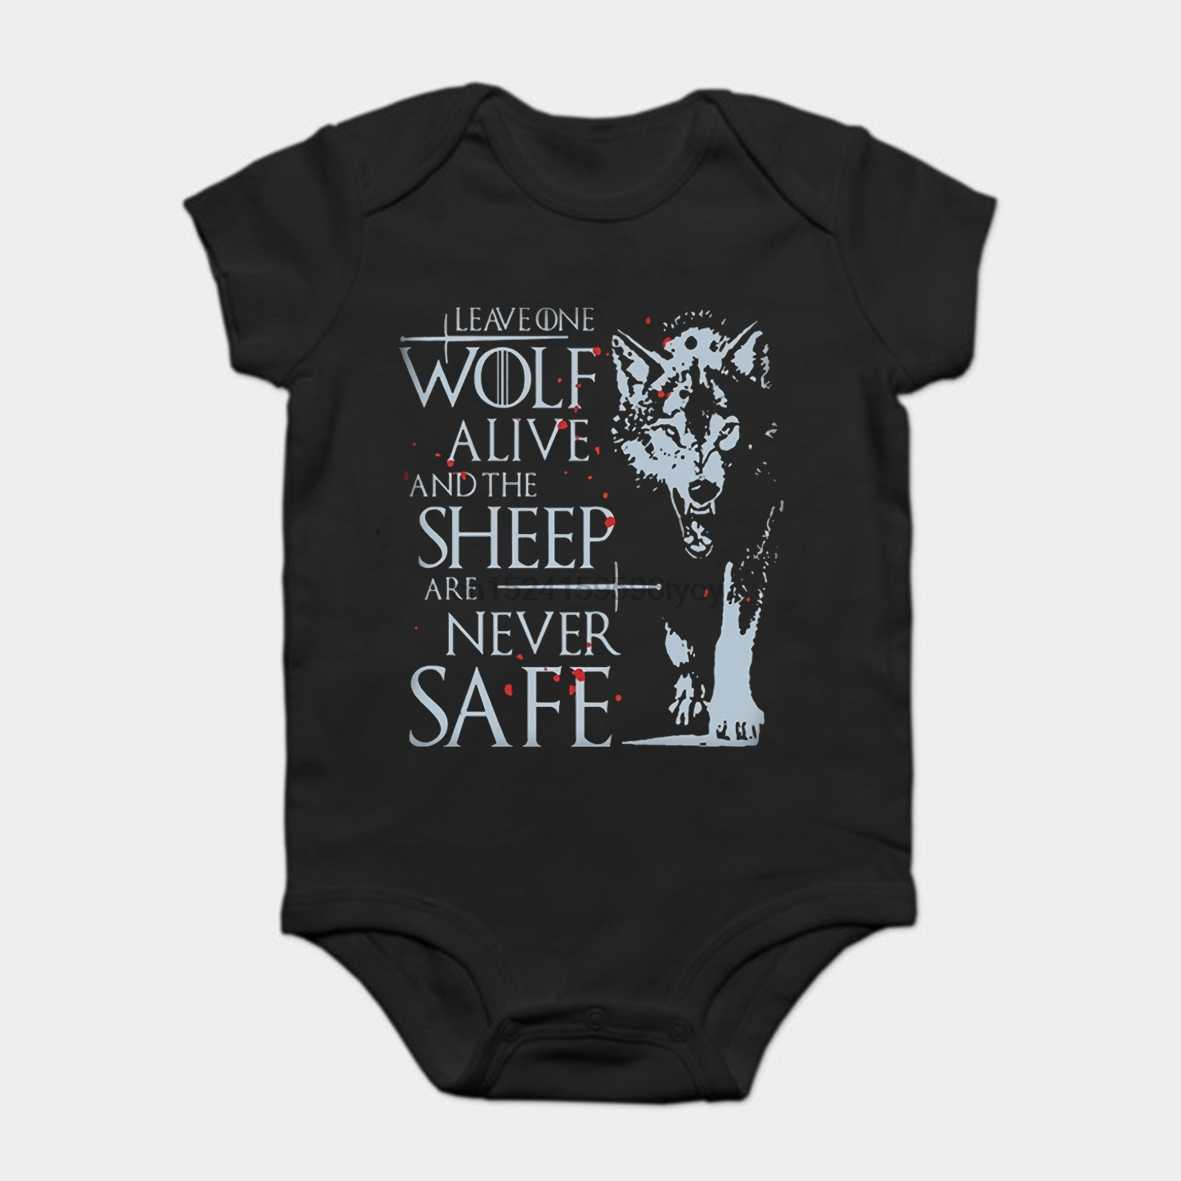 Baby Onesie Baby Bodysuits kid t shirt Arya Stark Game Of Thrones Leave One Wolf Alive Unisex